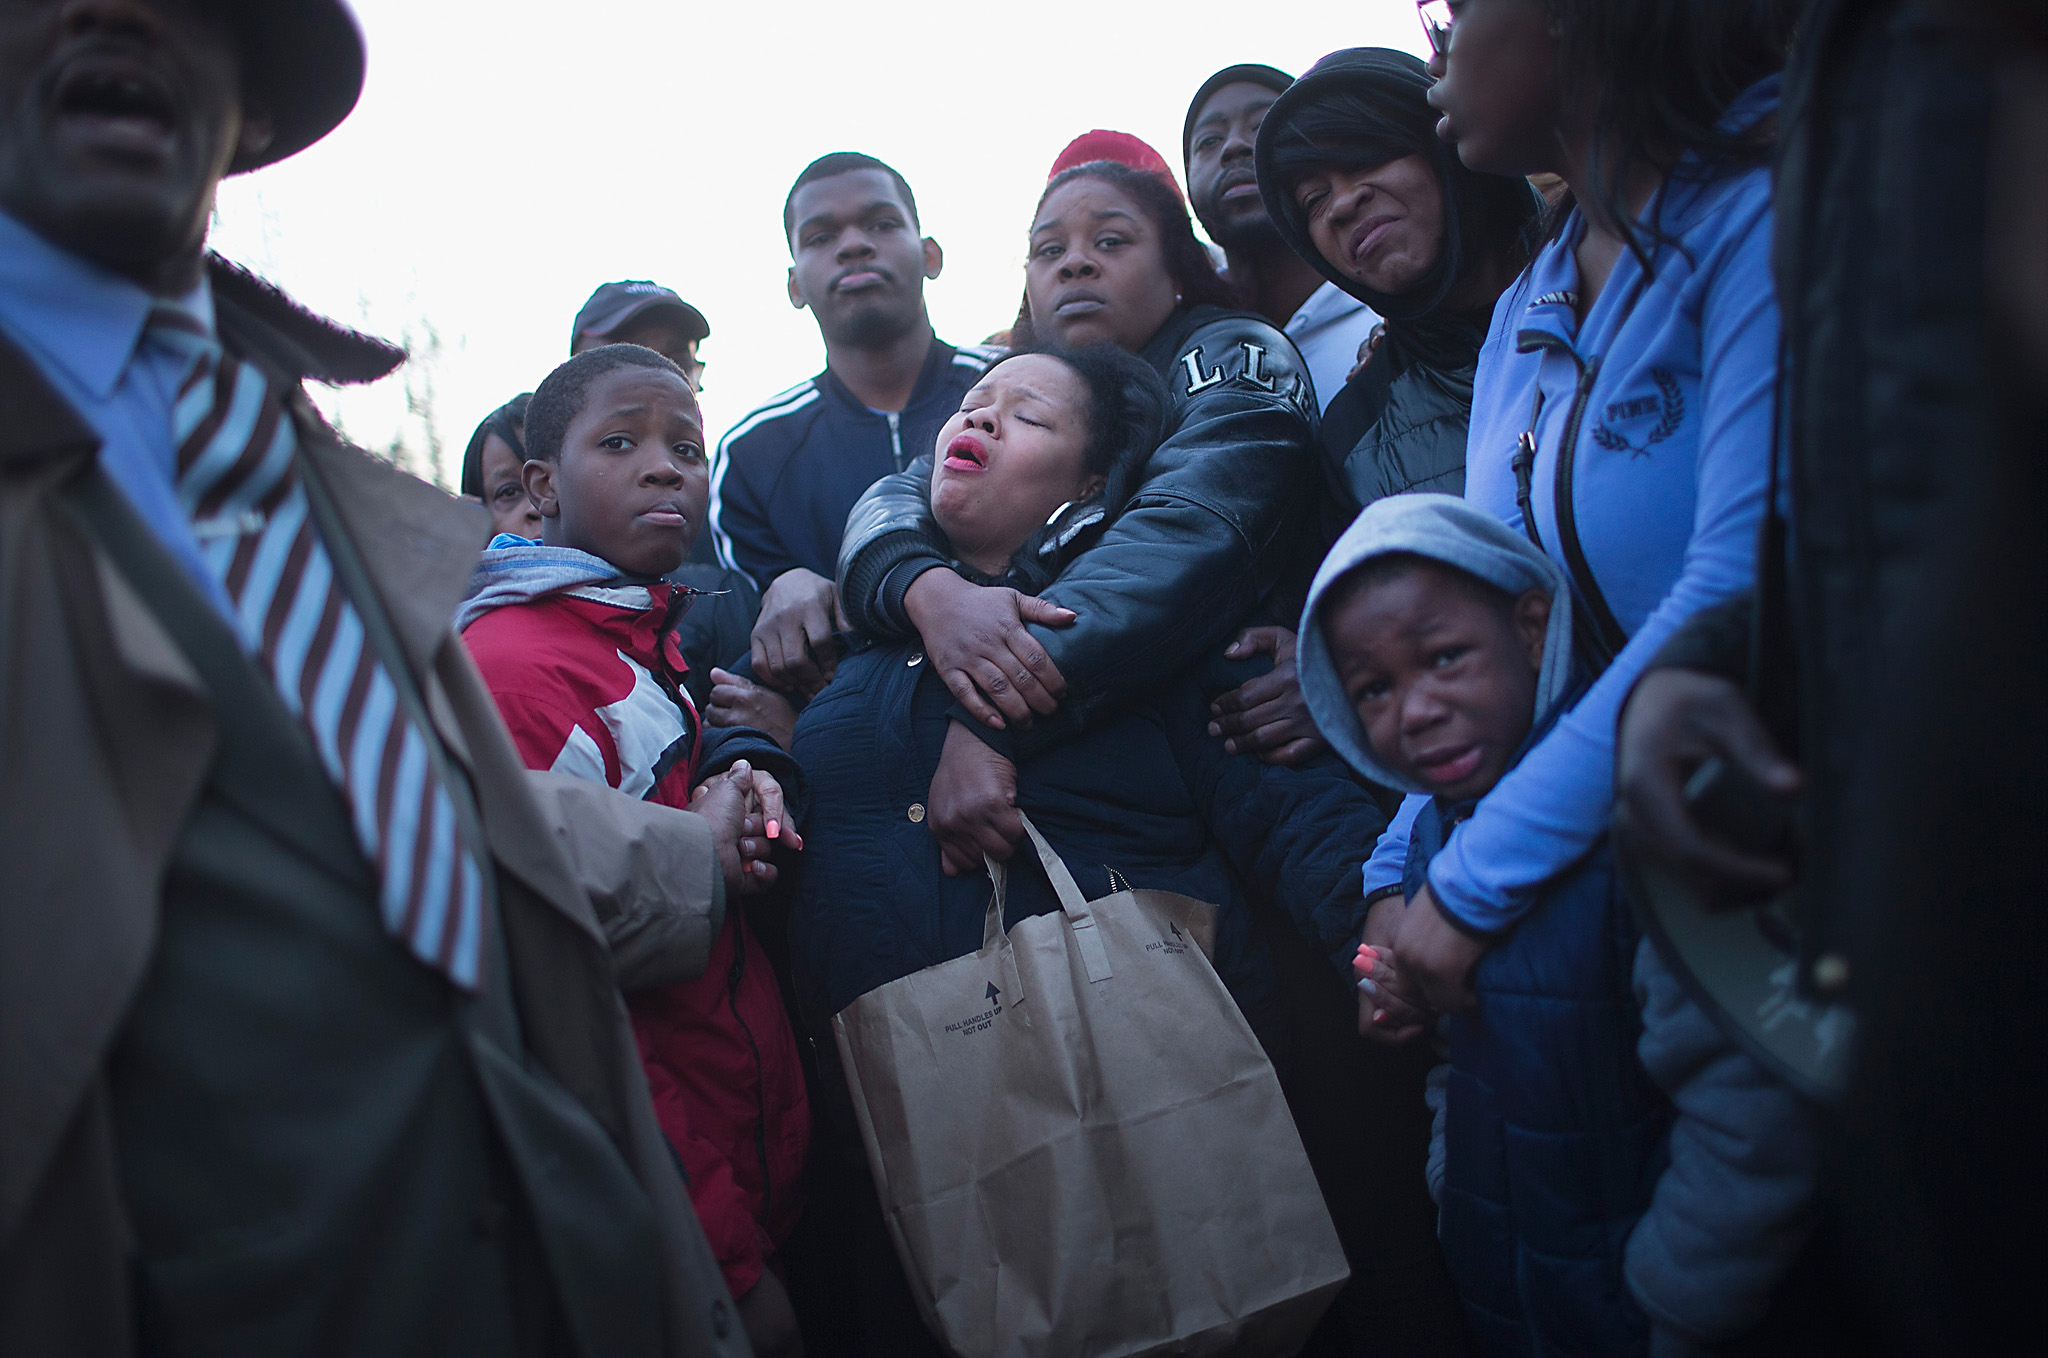 "Chicago Police Shoot And Kill Teen On City's West Side...CHICAGO, ILLINOIS - APRIL 12:  Tambrasha Hudson (C) is comforted as she joins demonstrators protesting the shooting death of her son 16-year-old Pierre Loury near the location where he was killed on April 12, 2016 in Chicago, Illinois. Police have said Loury took off running when the vehicle he was in was pulled over by police because it matched the description of a vehicle used in an earlier drive-by shooting. The chase, according to police, ended with an ""armed confrontation"".  (Photo by Scott Olson/Getty Images)"